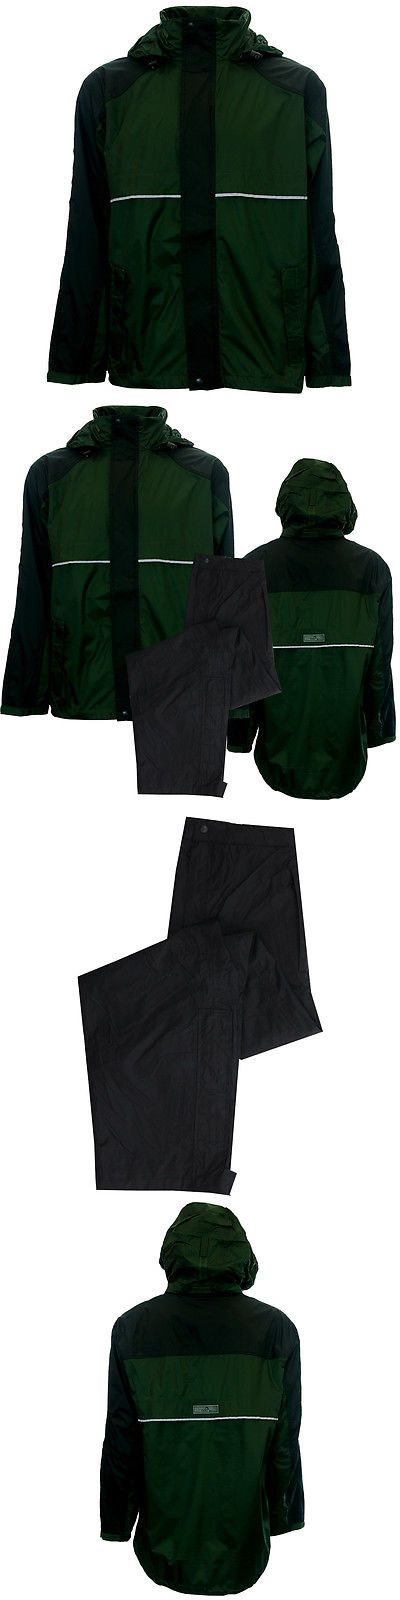 Coats and Jackets 181134: The Weather Company Mens Golf Breathable Rain Suit With Hood • Jacket And Pants BUY IT NOW ONLY: $49.99